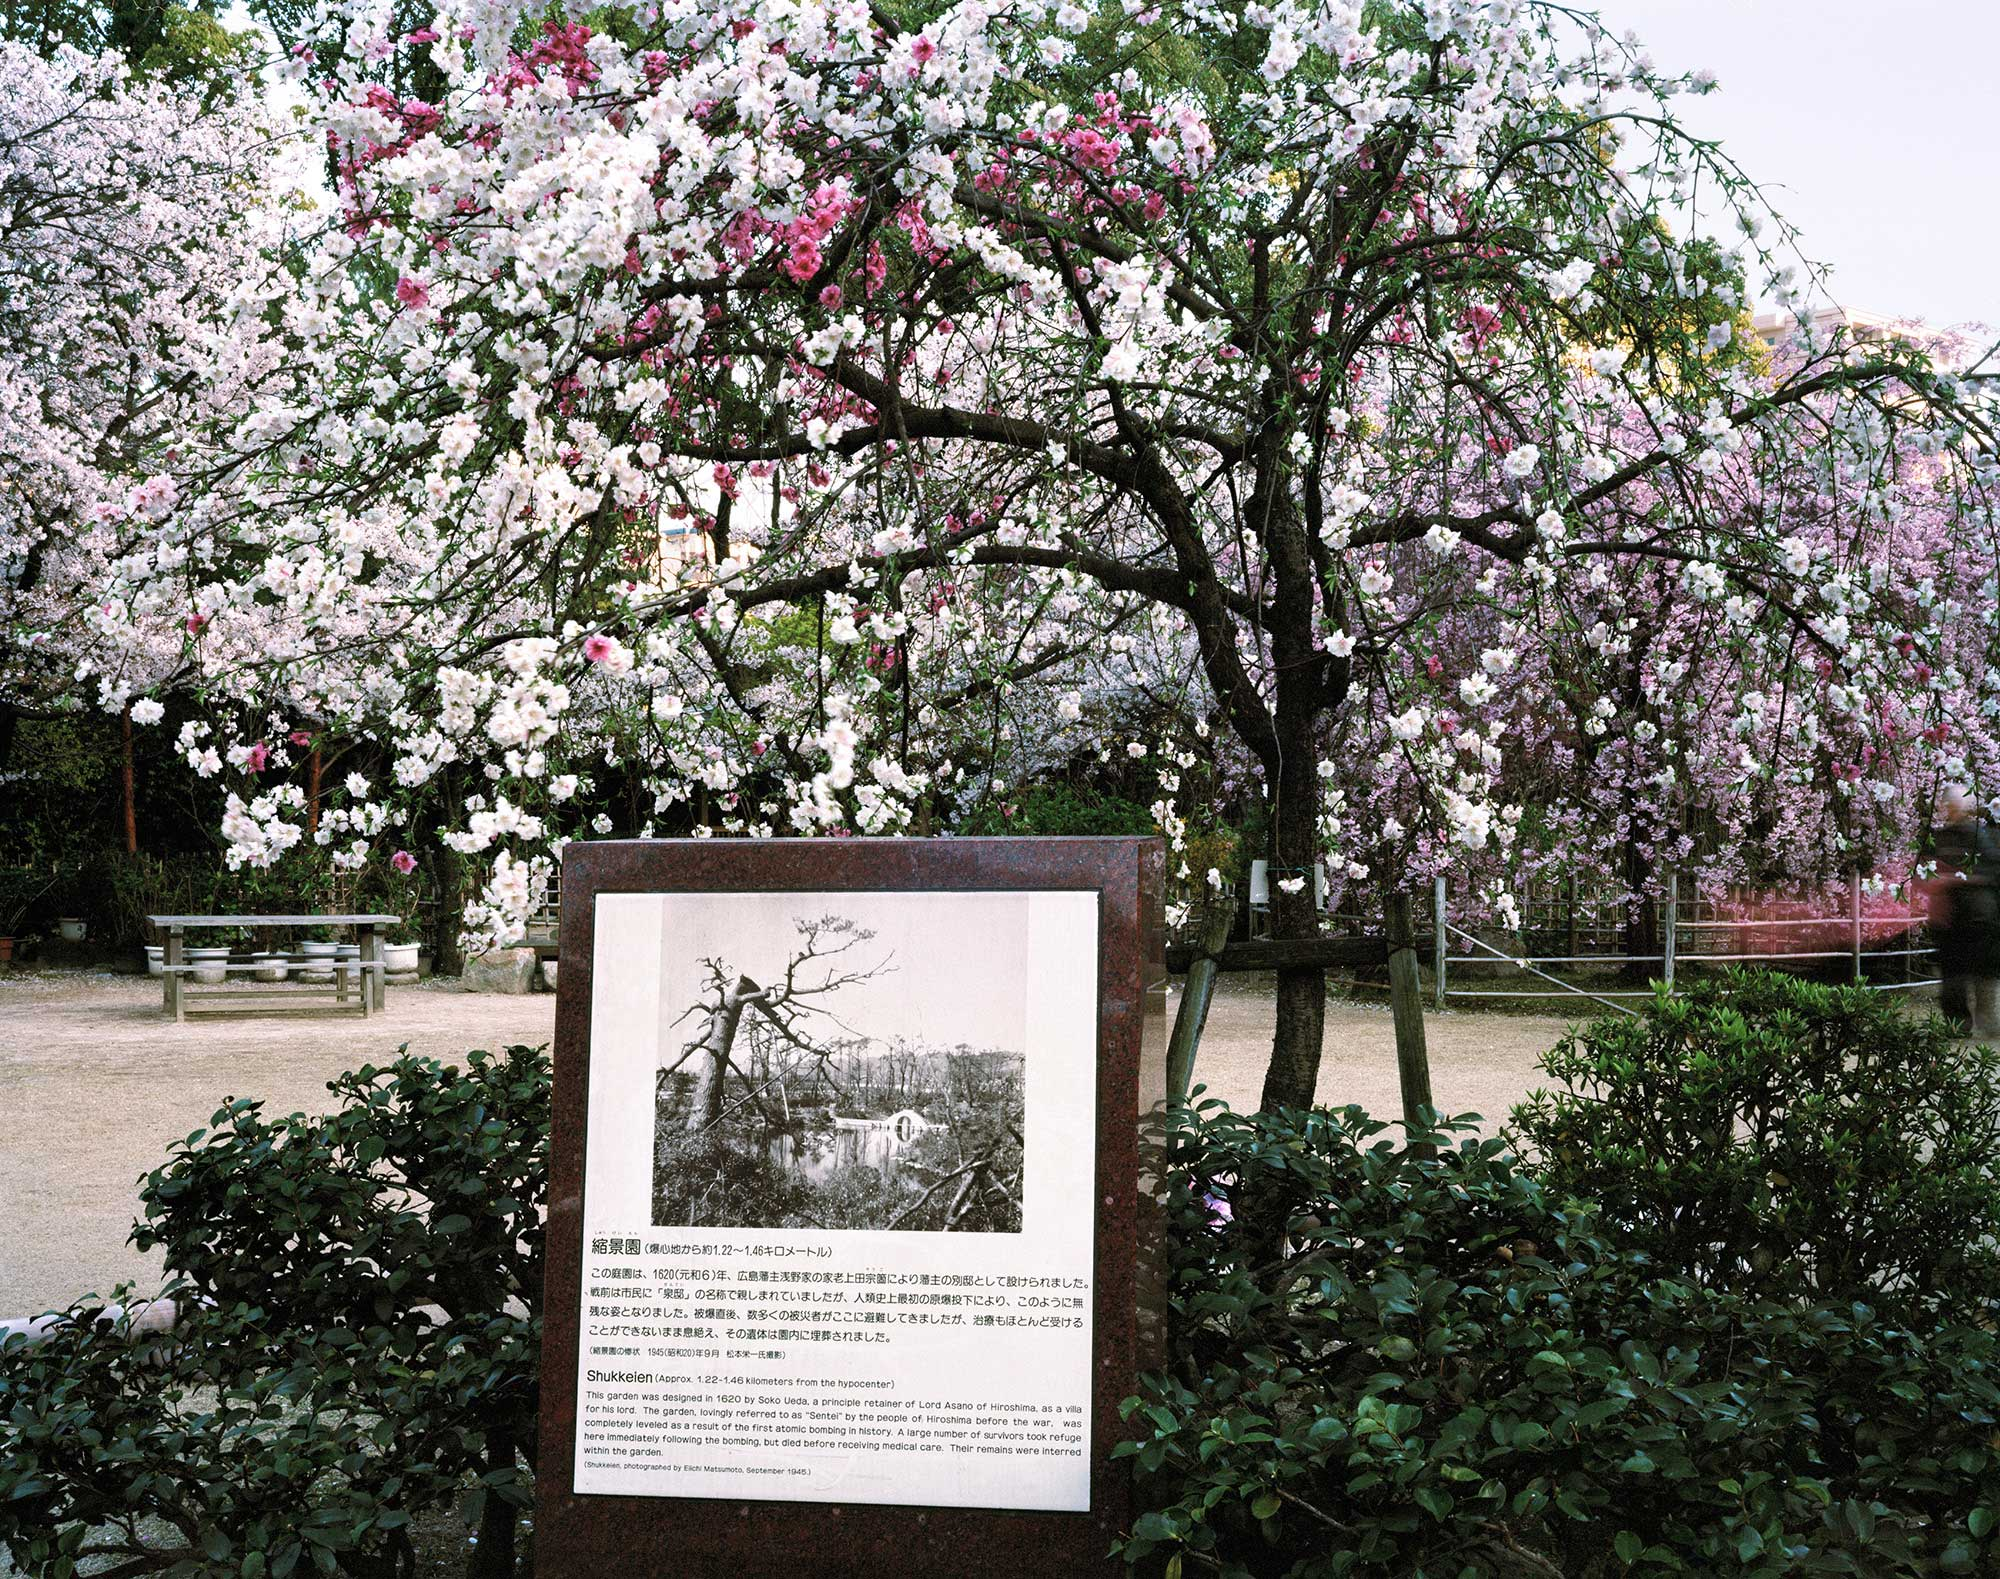 Shukkeien Garden, Hiroshima, about 1,250 -1,460 meters from the hypocenter, photograph by Elichi Matsumoto, September 1945, April 2013, Chromogenic print, 30 x 40 inch.